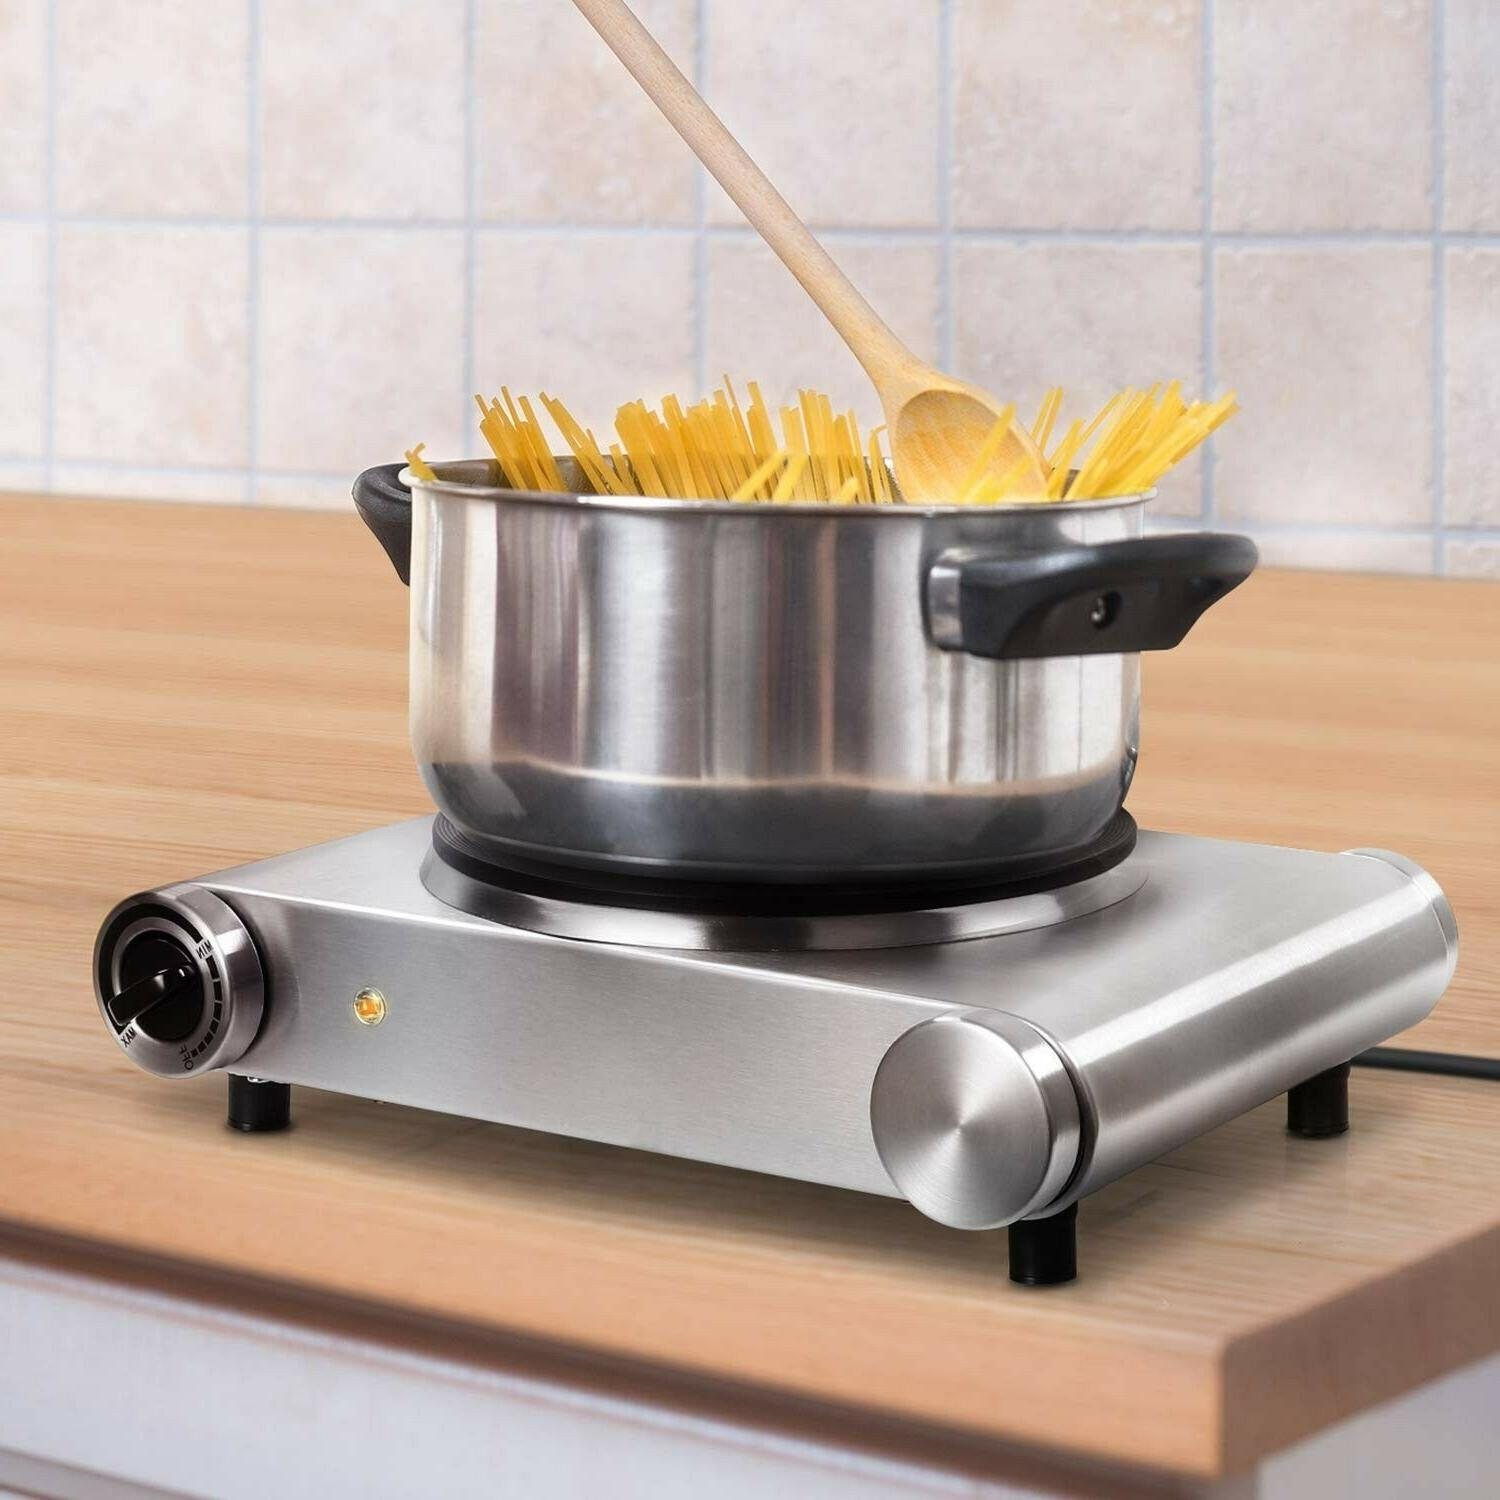 Hot Plate 1500W Hob for Cooking